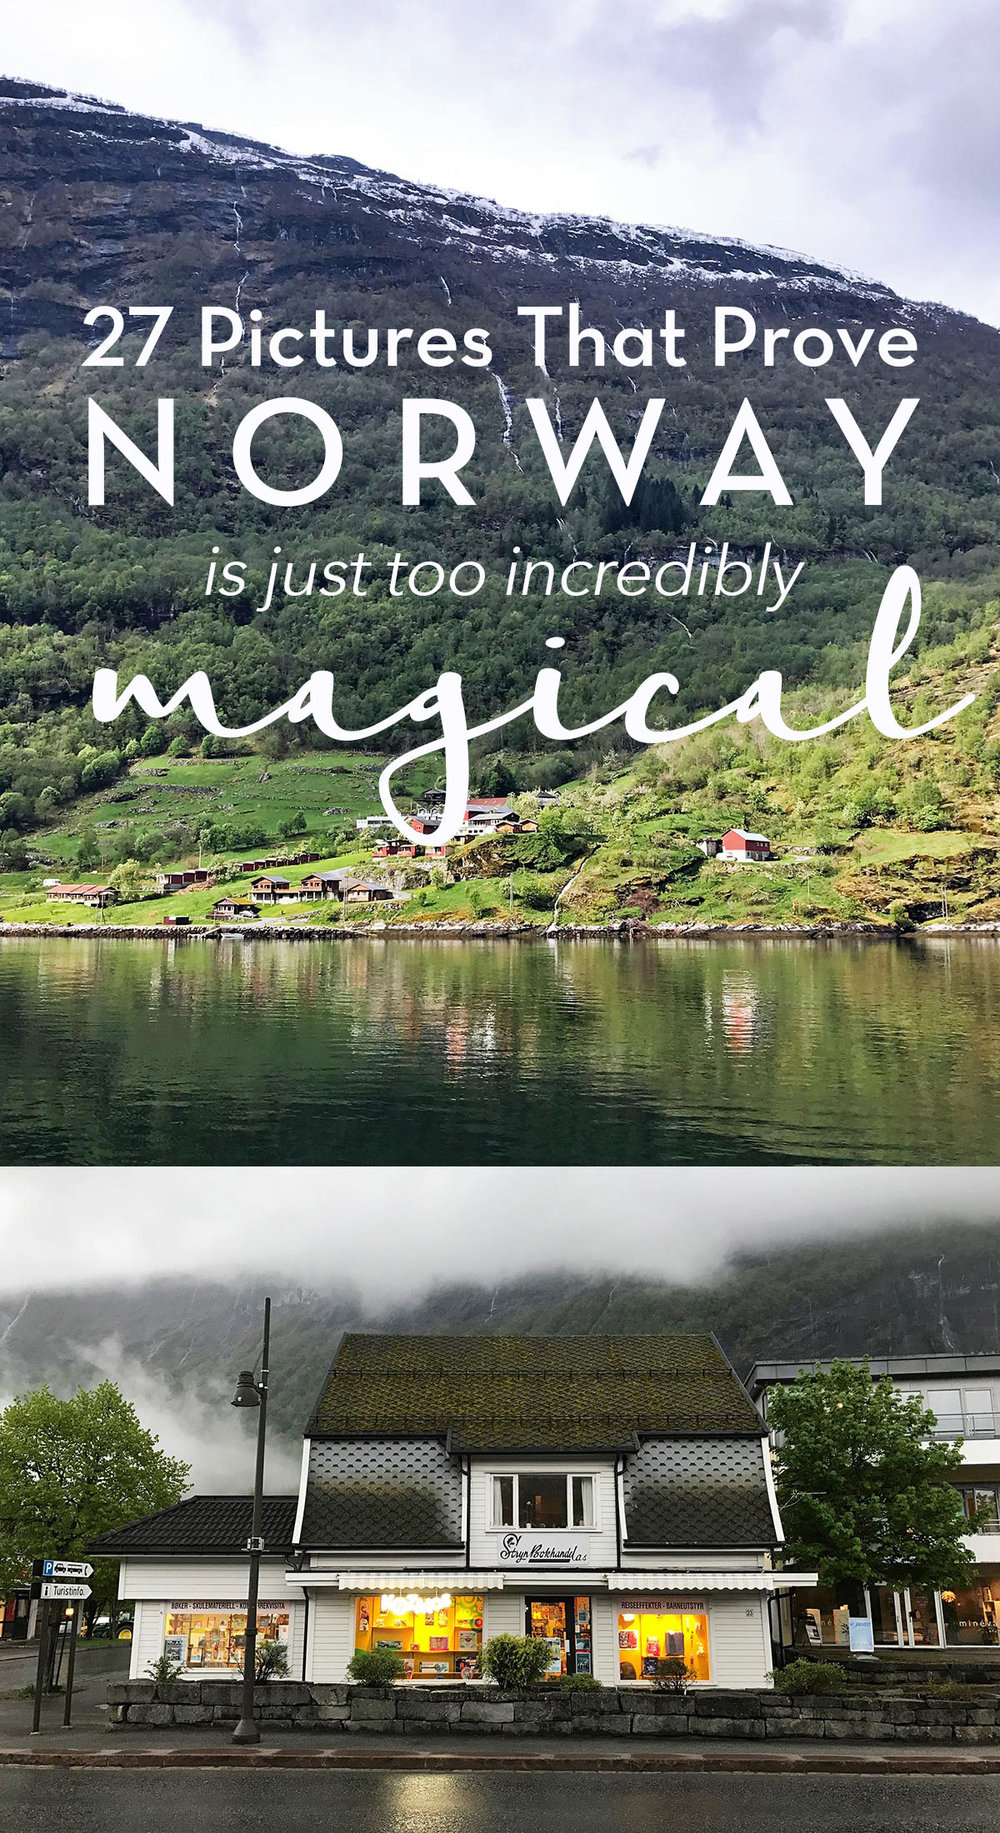 Norway-Photos.jpg